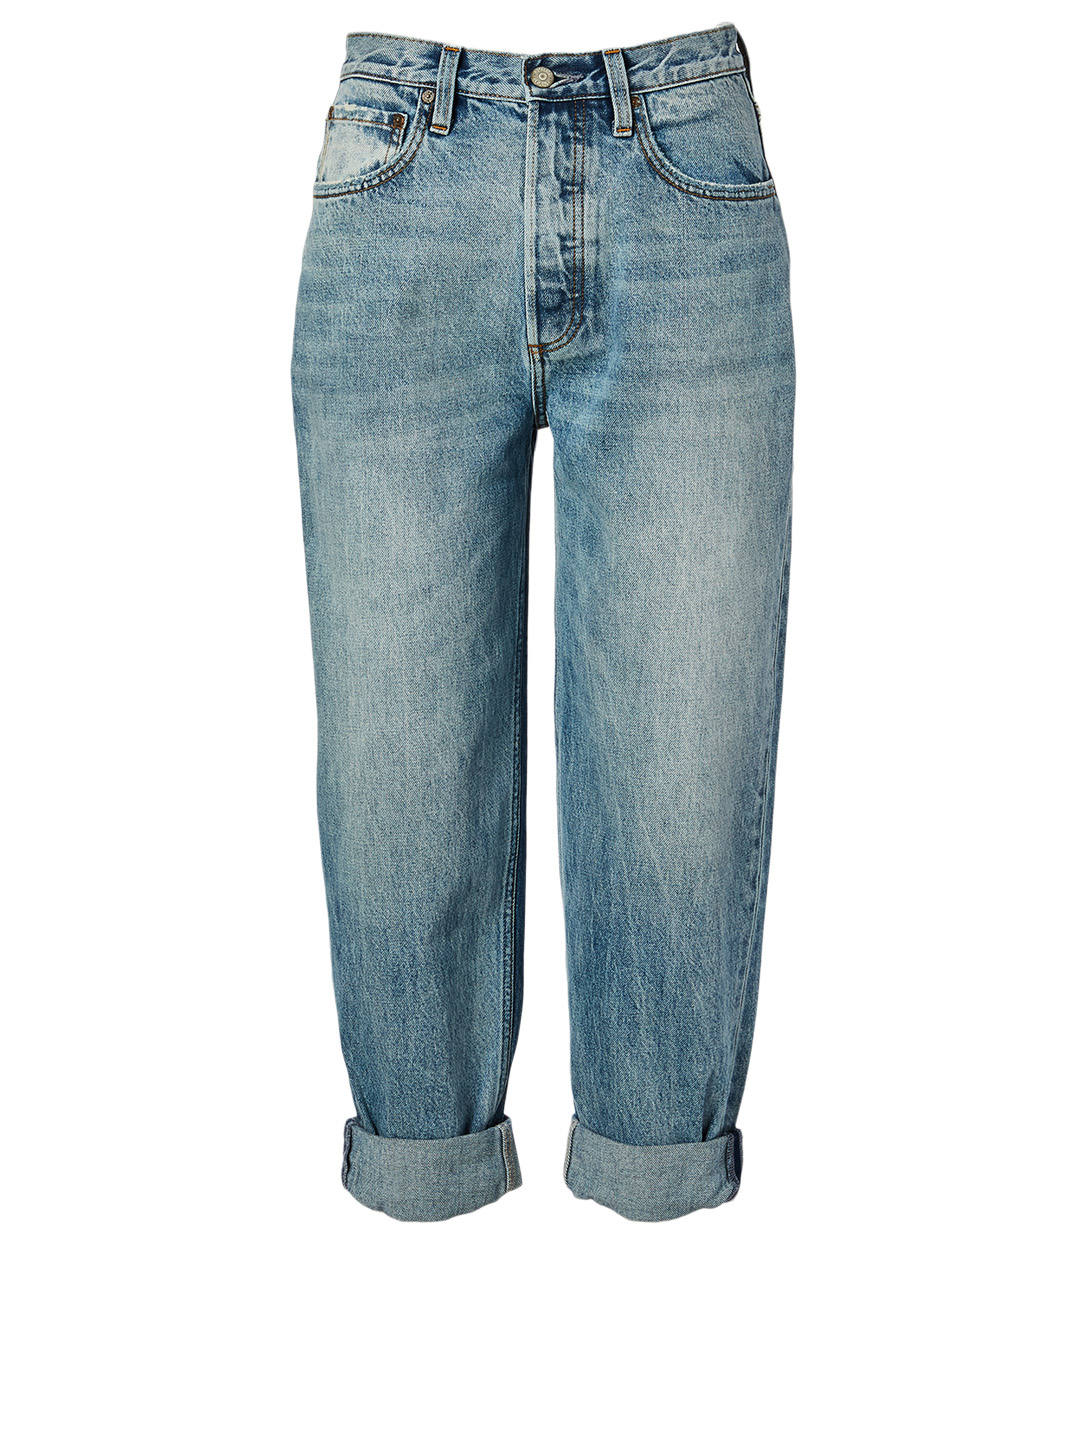 BOYISH The Toby High-Waisted Jeans Women's Blue